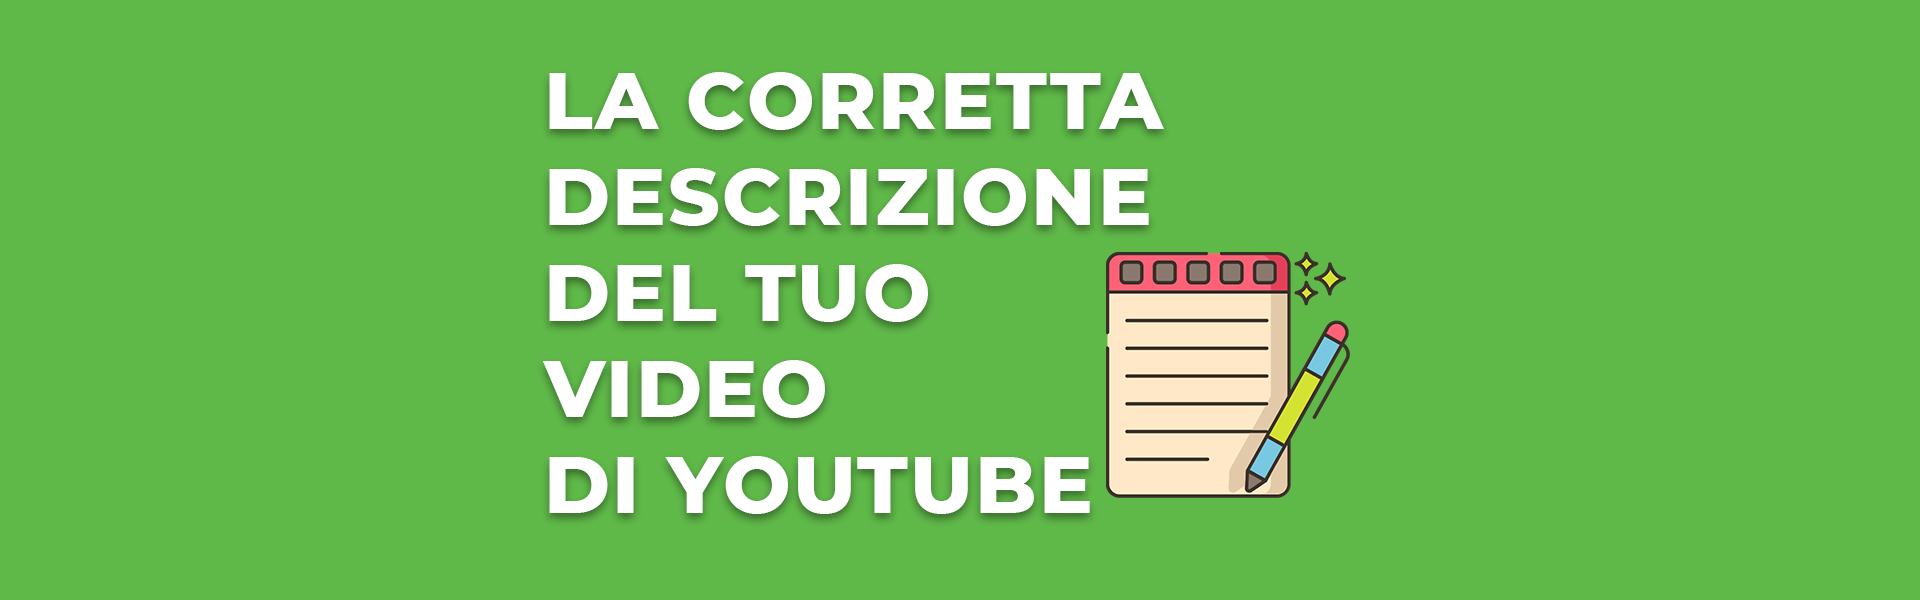 9109La descrizione del video di Youtube efficace